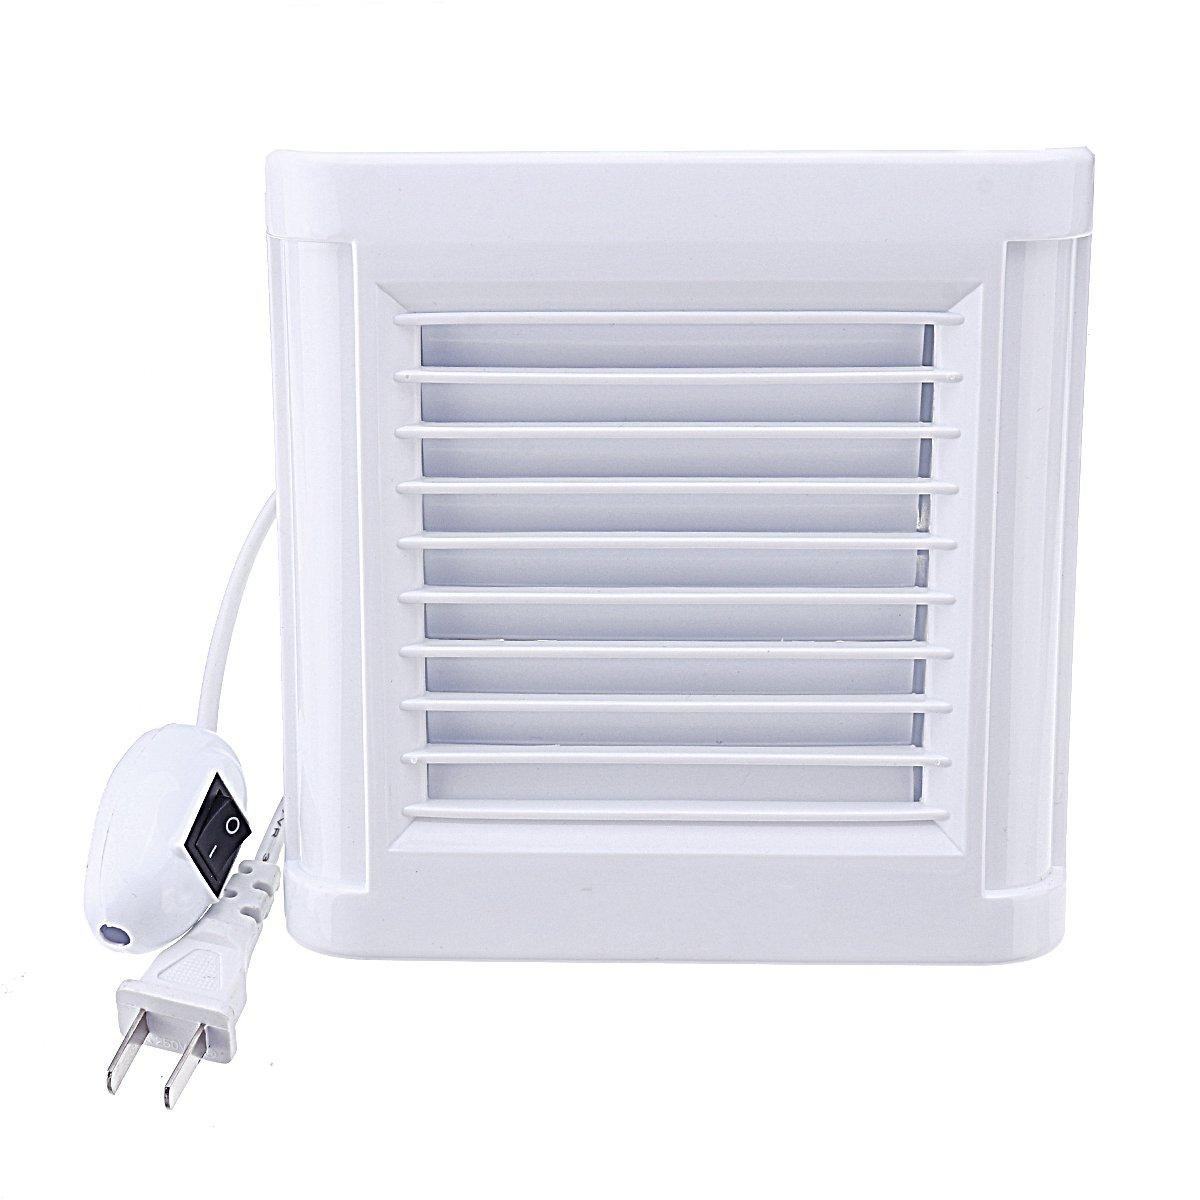 Mute Ventilation Extractor Exhaust Fan Blower Kitchen Bathroom Toilet 4 Inch / 6 Inch фото